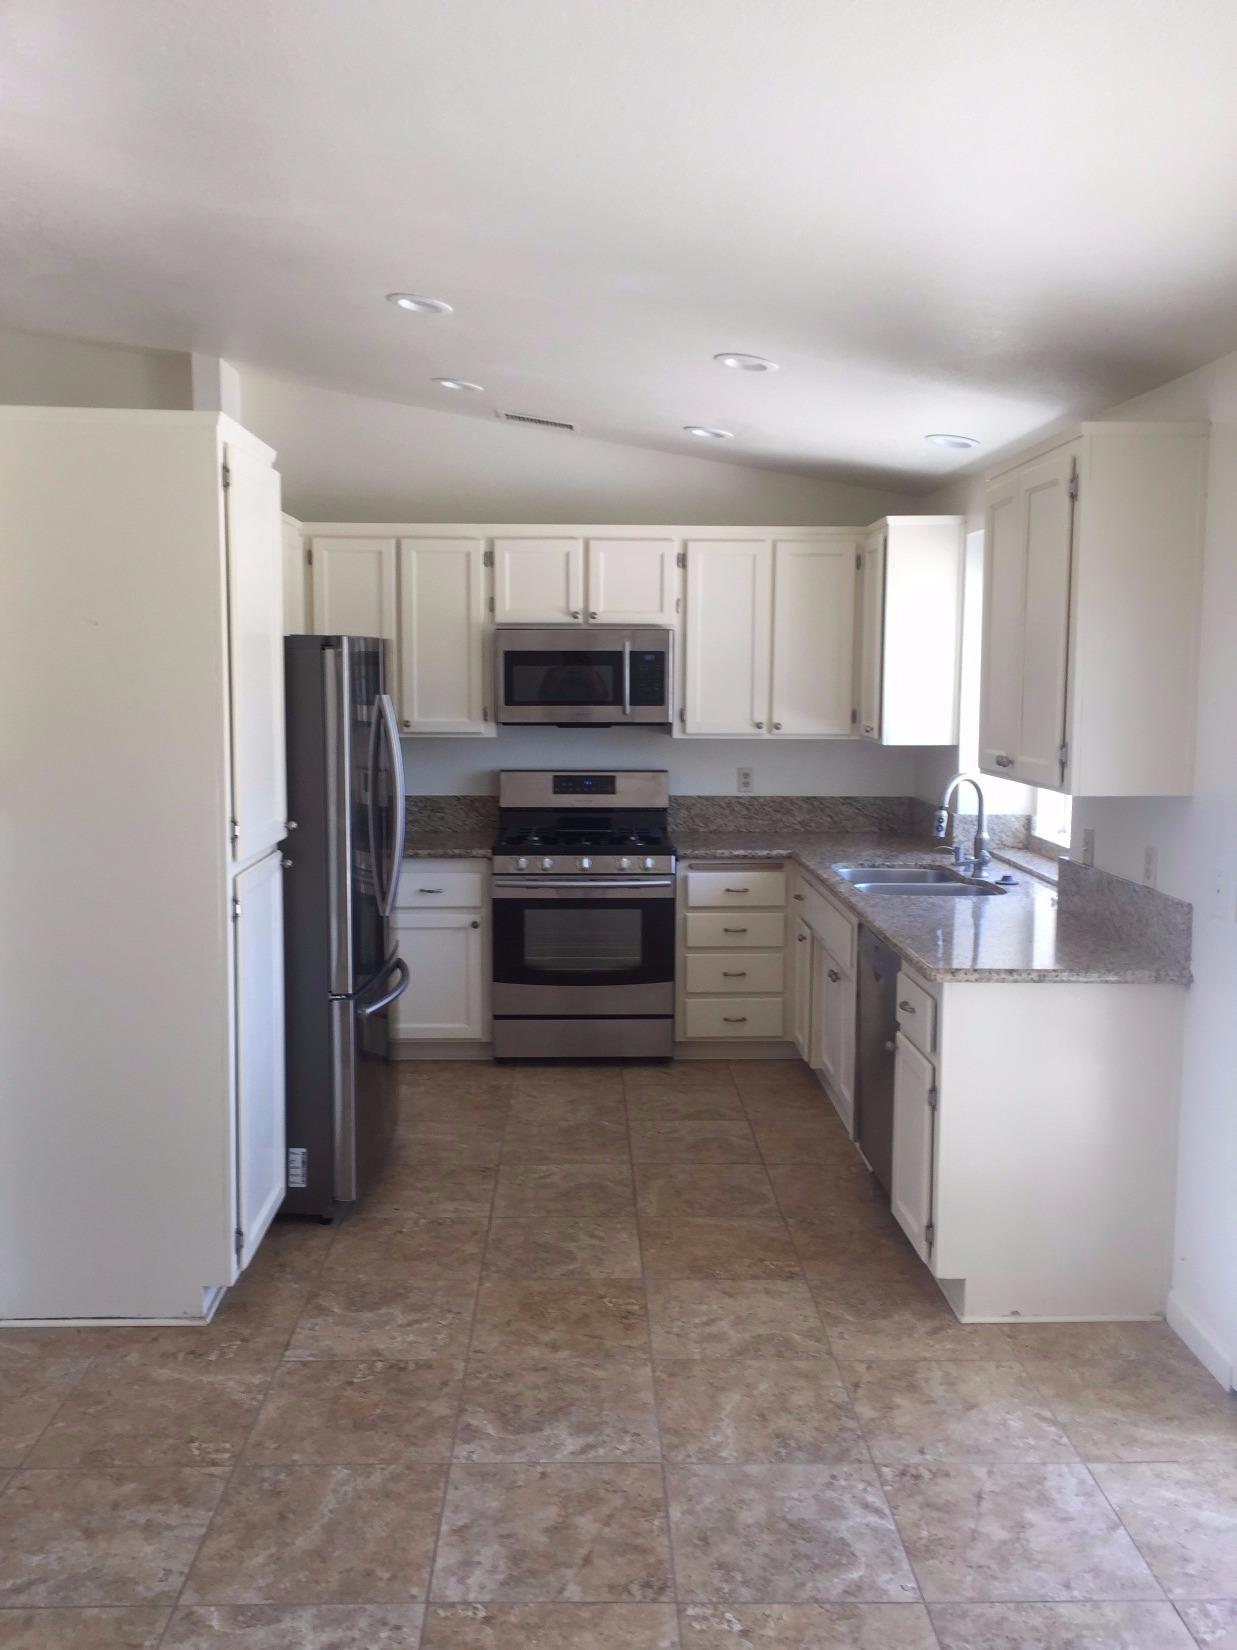 Apple Valley Kitchen Cabinets Undisclosed Apple Valley Ca 36 Photos Mls 485574 Movoto